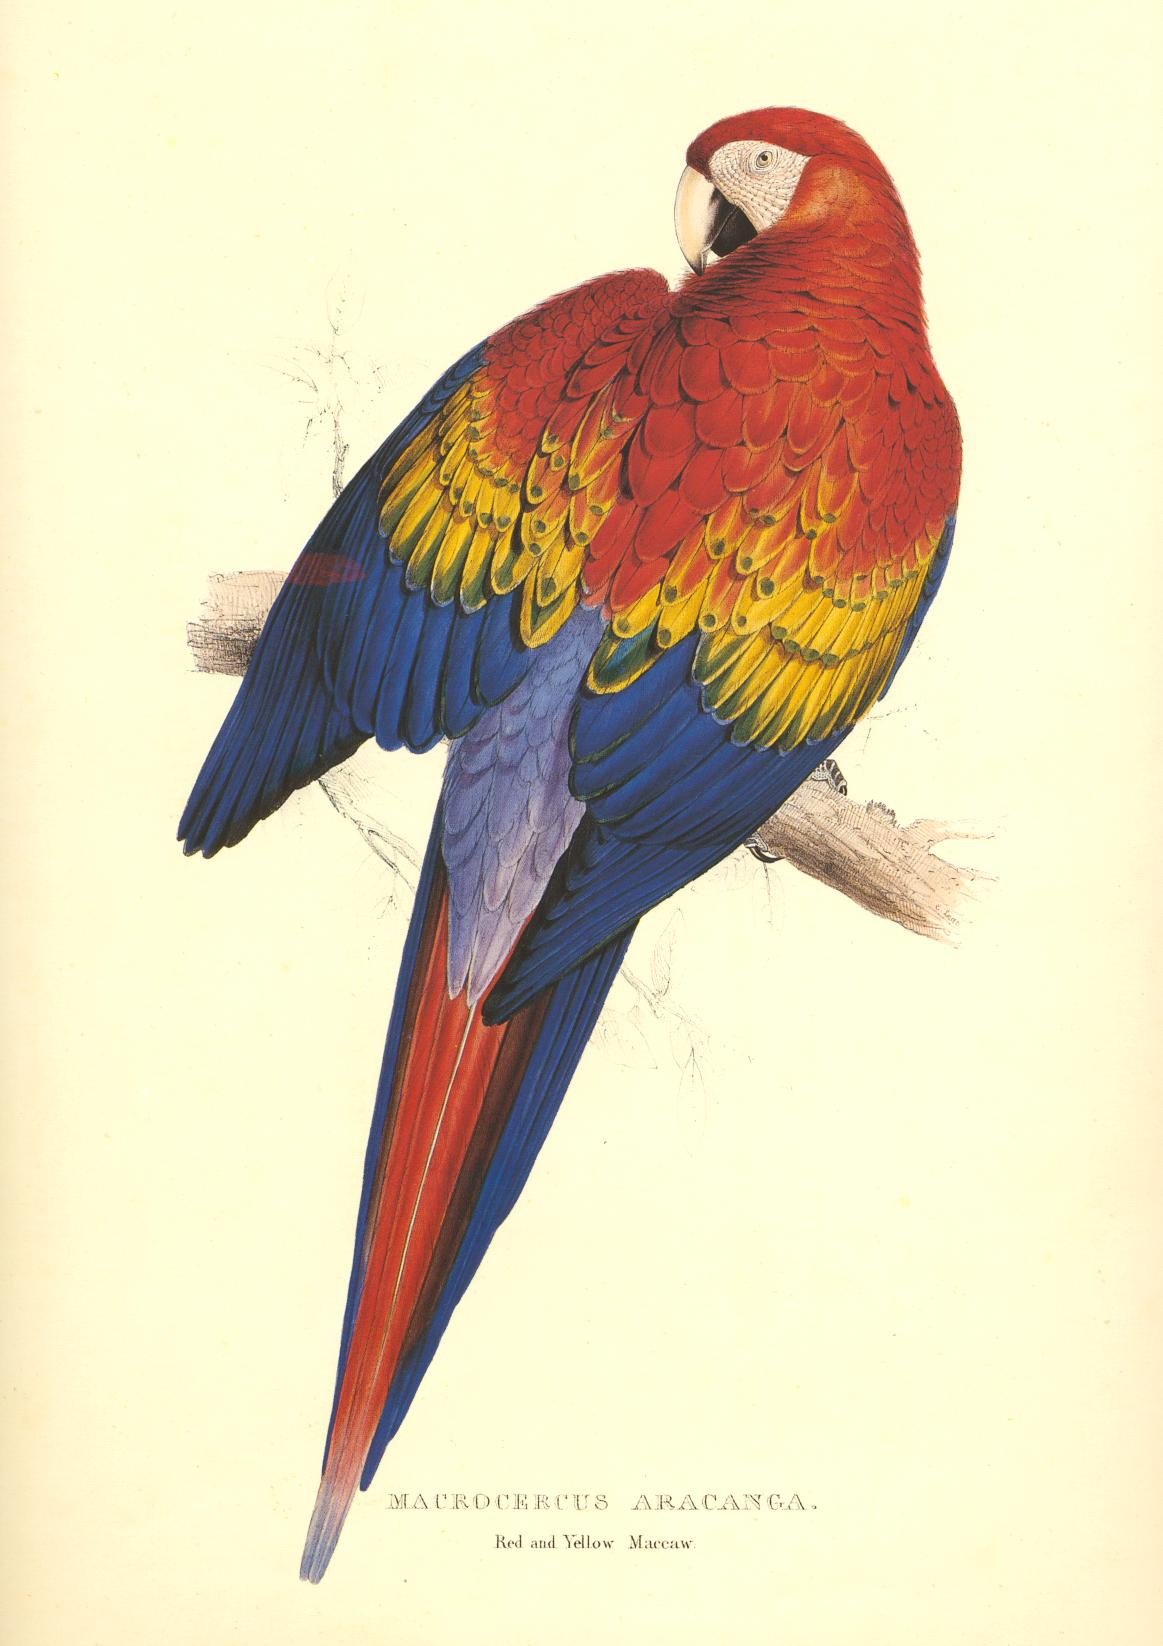 Edward Lear Parrot. Red & Yellow Maccaw Macrocercus aracanga Limited Edition print